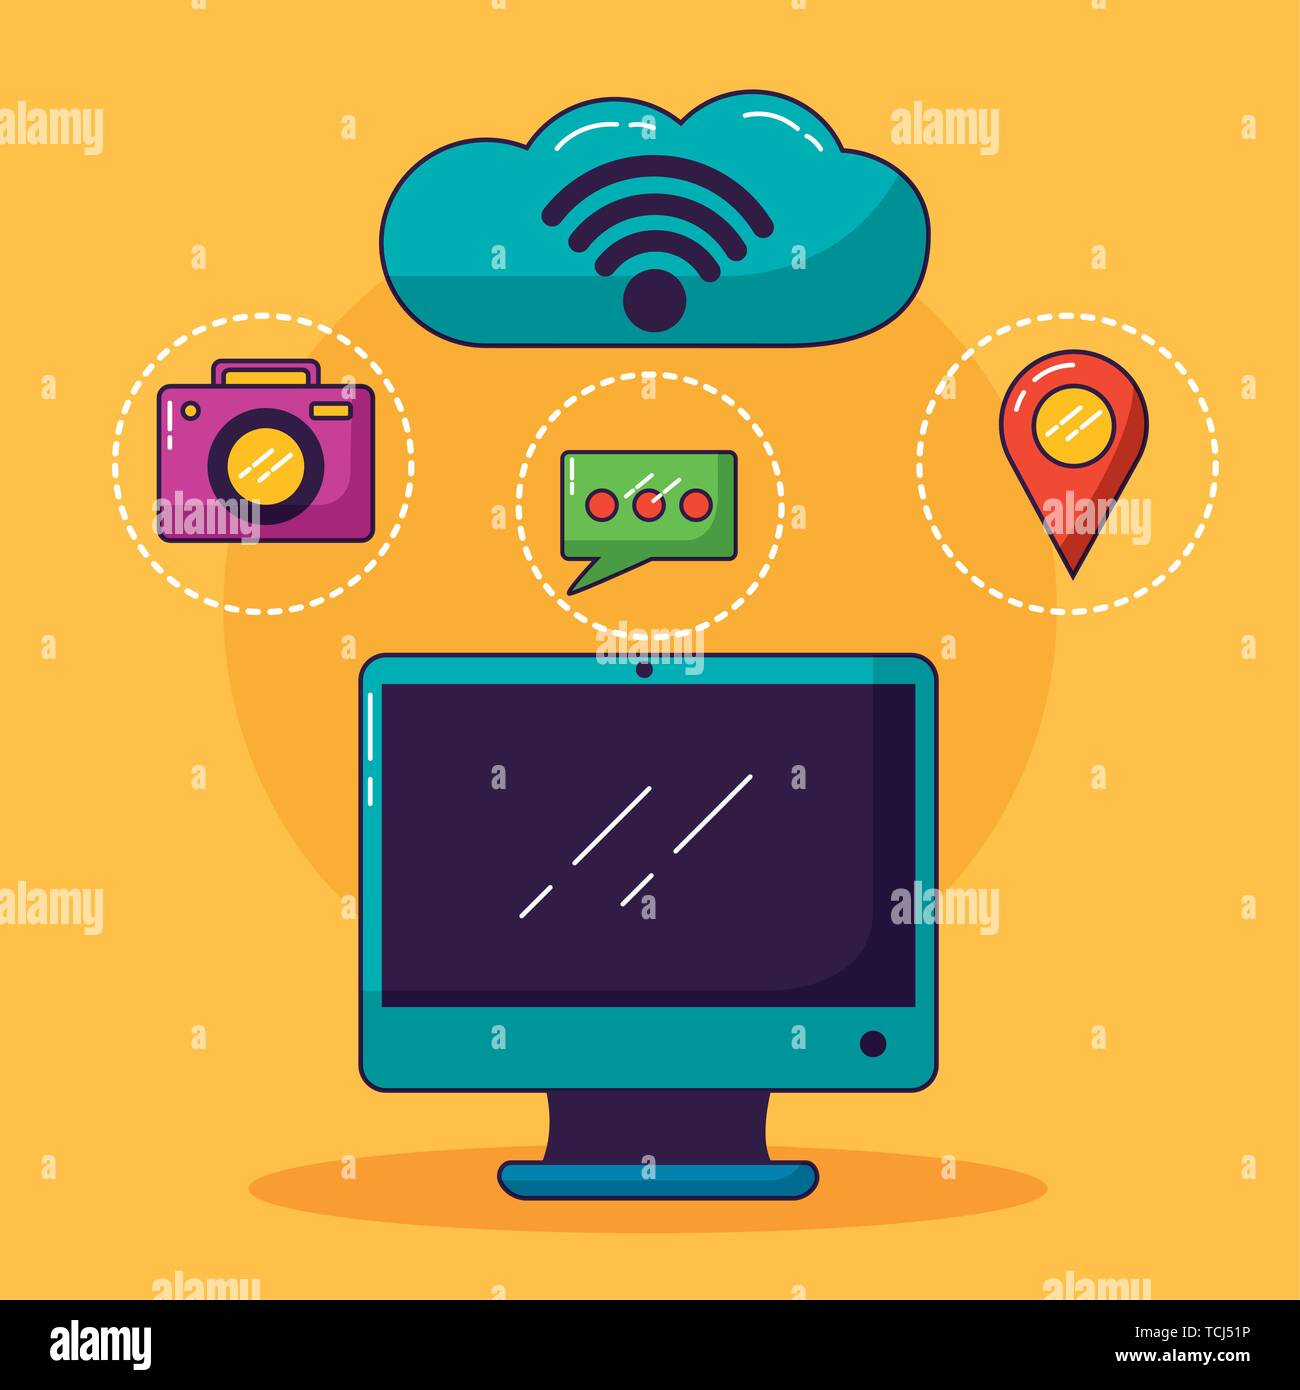 wifi free connection - Stock Image